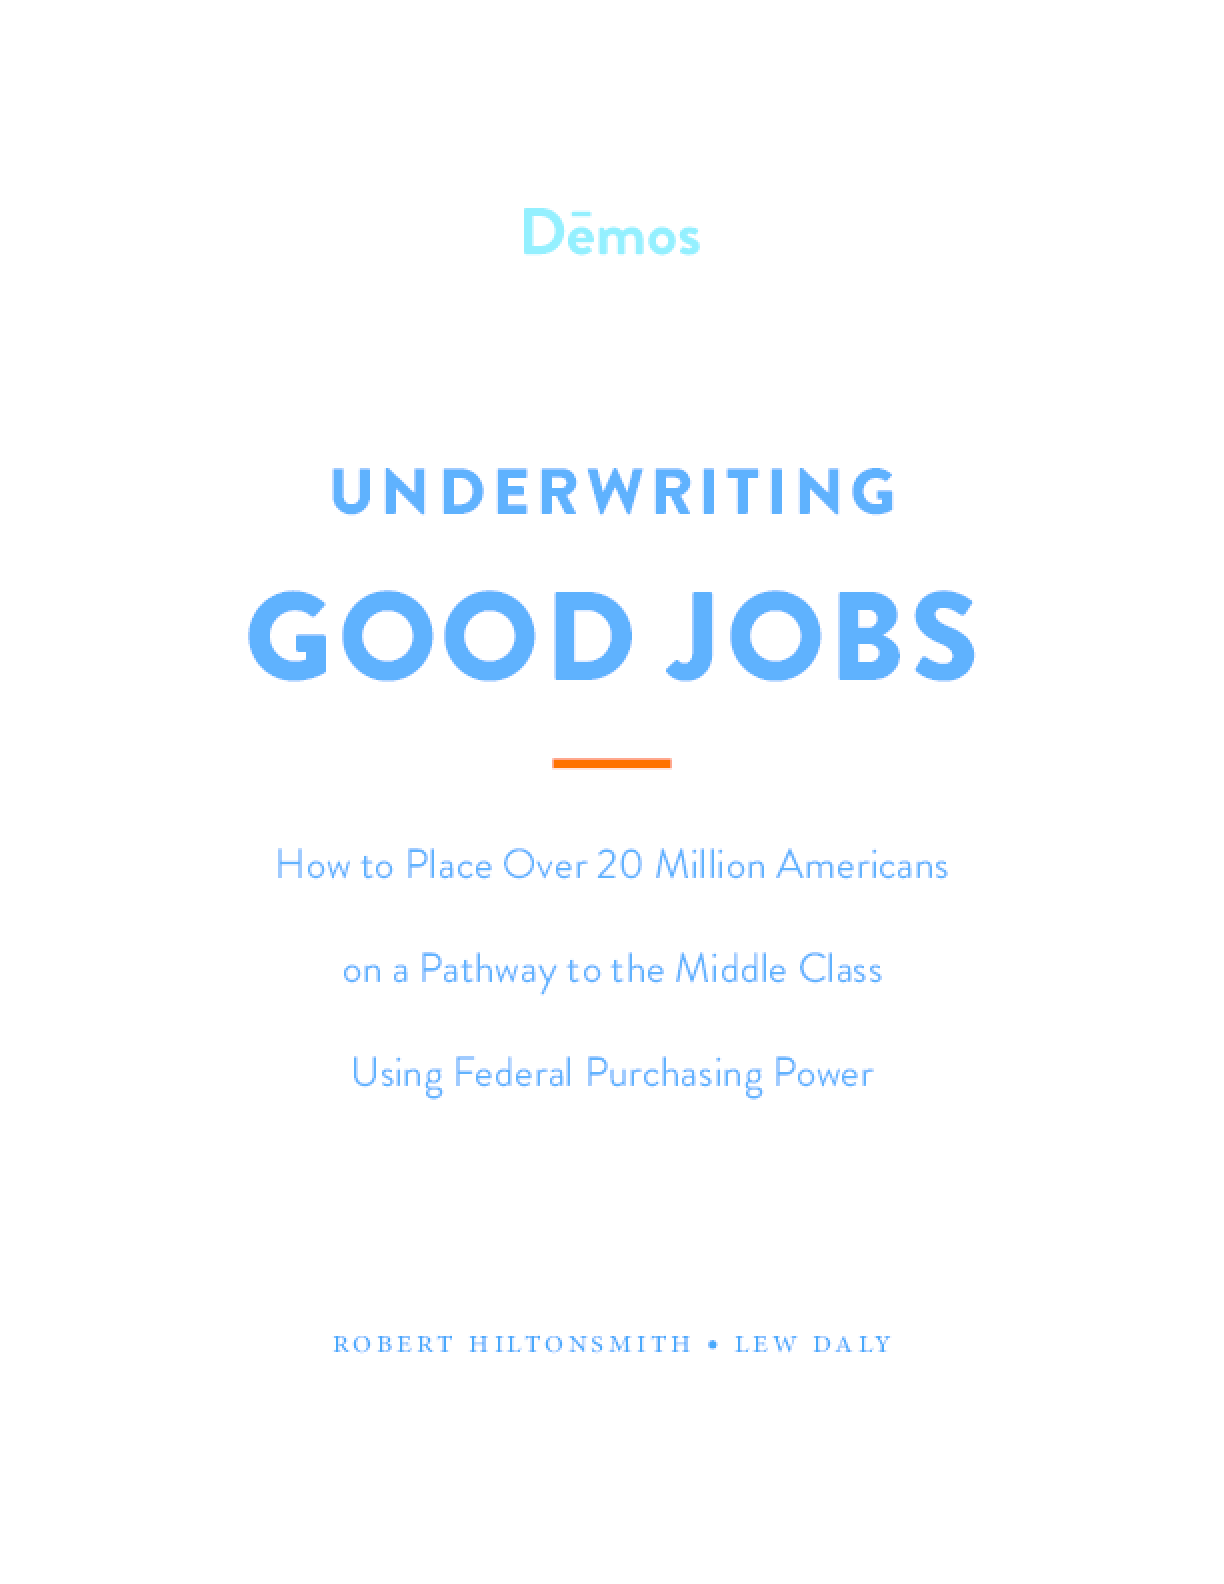 Underwriting Good Jobs: How to Place Over 20 Million Americans on a Pathway to the Middle Class Using Federal Purchasing Power